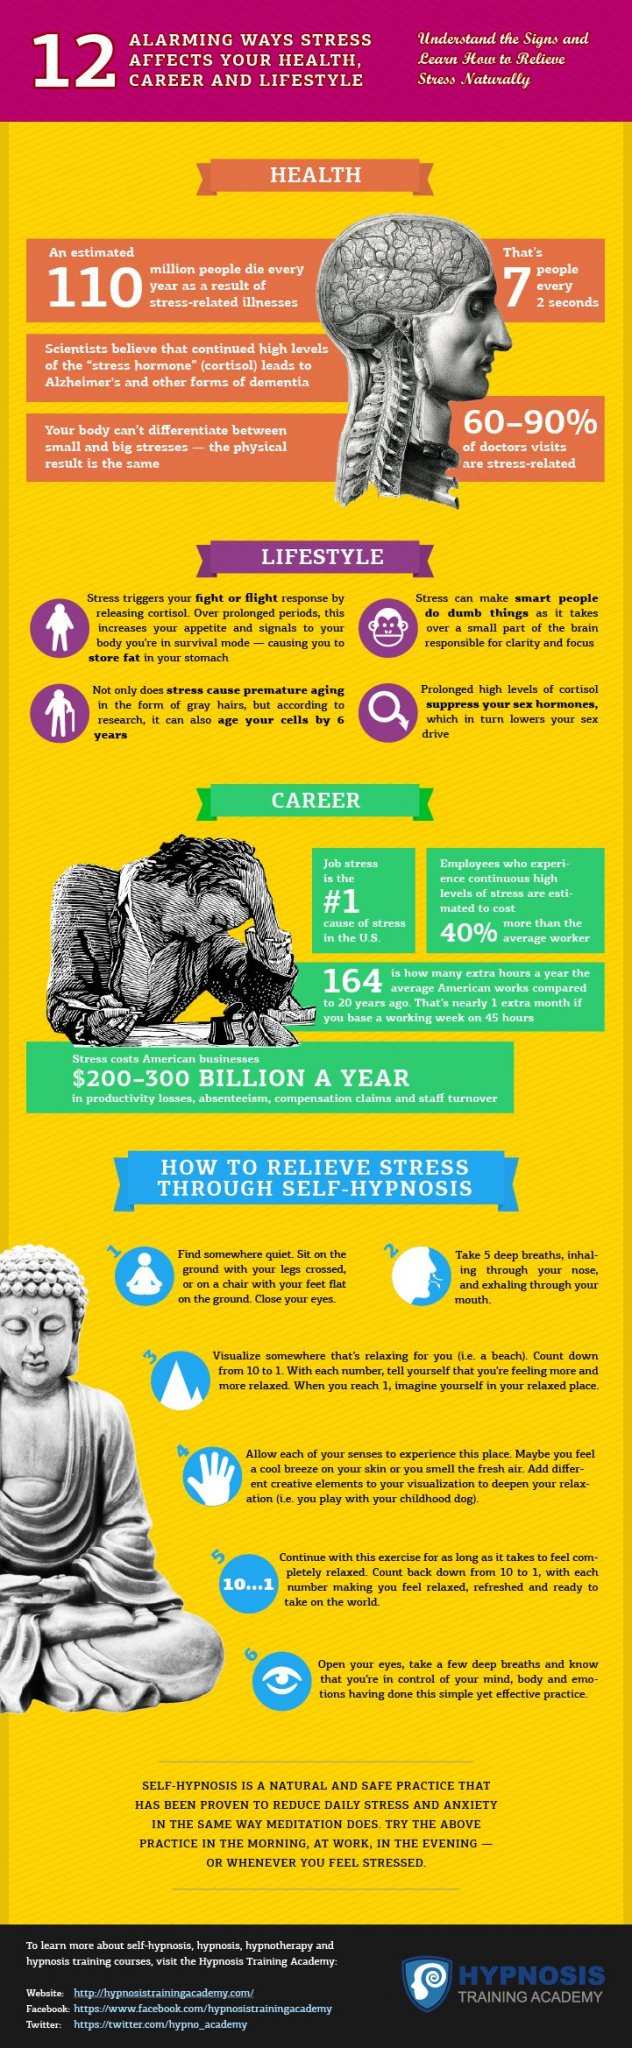 How To Relieve Stress Naturally Infographic